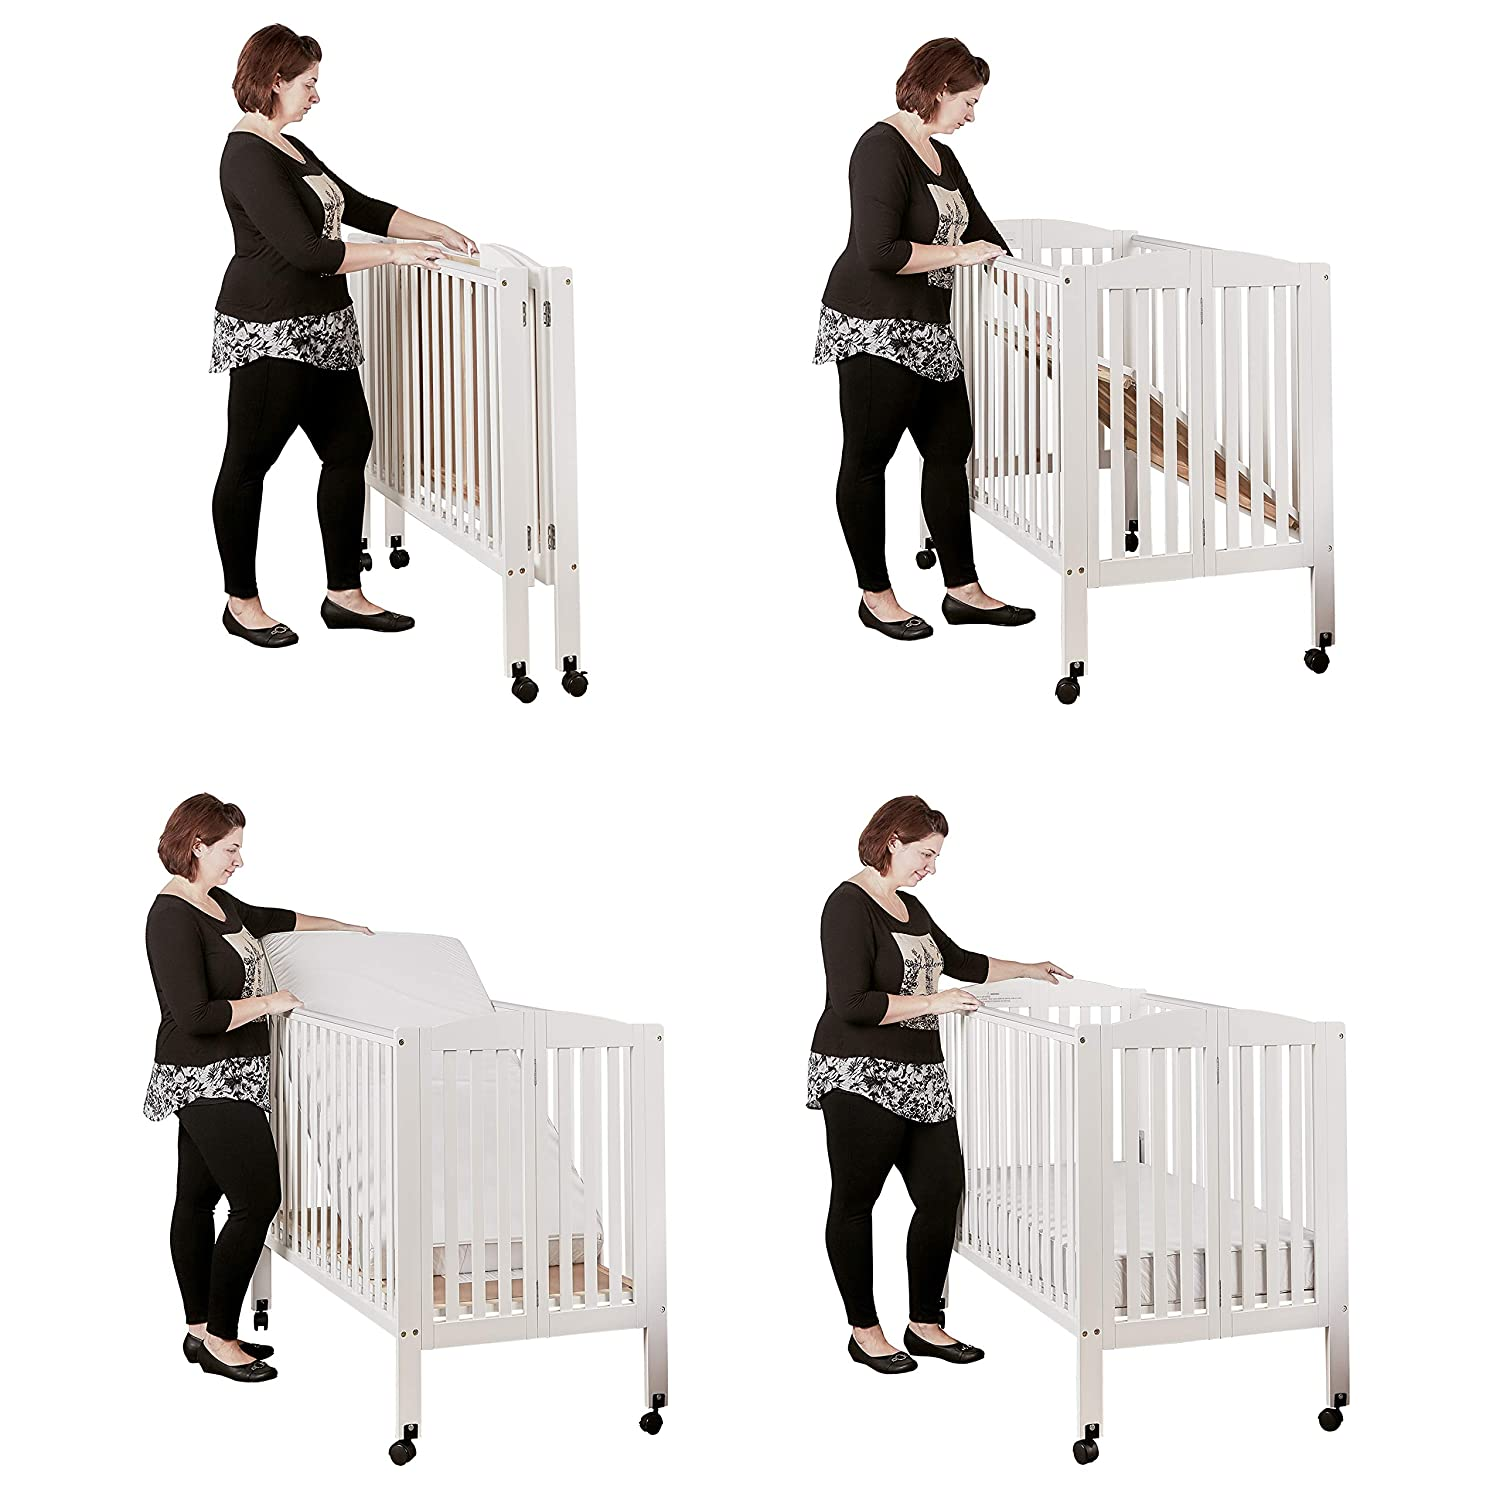 Espresso Dream On Me 3 in 1 Portable Folding Stationary Side Crib